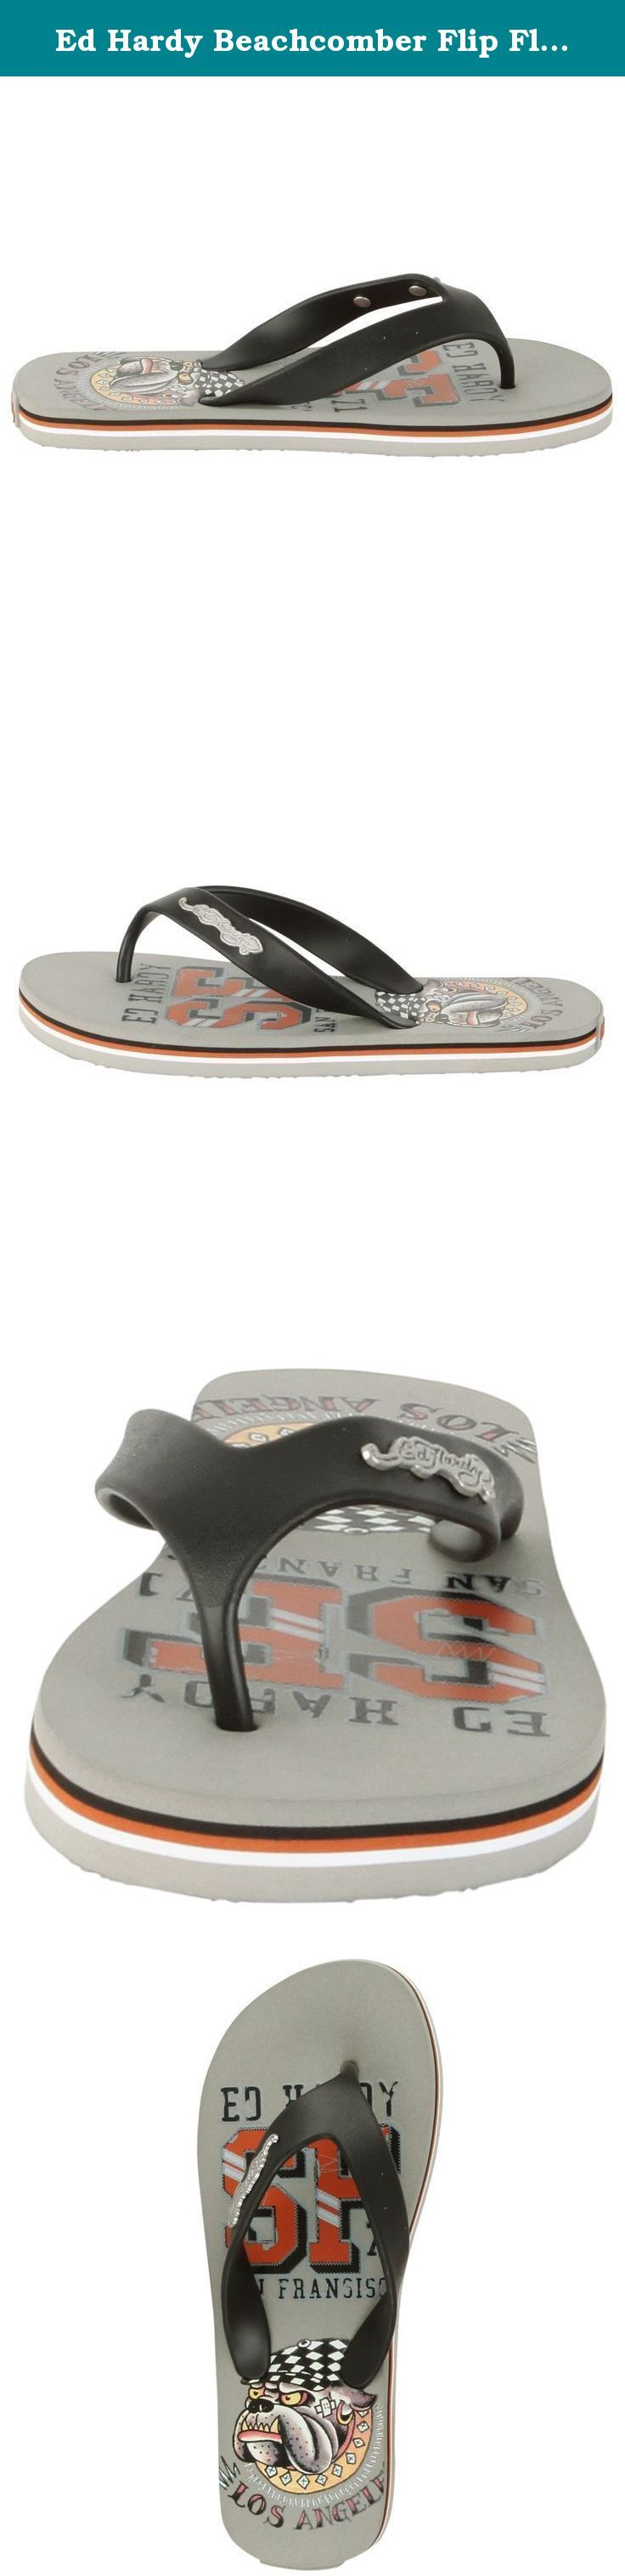 Ed Hardy Beachcomber Flip Flop Kids Sandal - Grey - 3. The Ed Hardy Flip Flop Kids BeachcomberSandal is a popular beach sandal and is part of the Ed Hardy Shoe Collection. Trendy and comfortable flip flops with authentic Ed Hardy Tattoo images. Lightweight rubber upper in a casual three point thong sandal style with a round toe and rolled rubber toe thong post. A brushed metal tattoo graphics button and embossed Ed Hardy logo adorn the matching rubber vamp straps flexible midsole and...